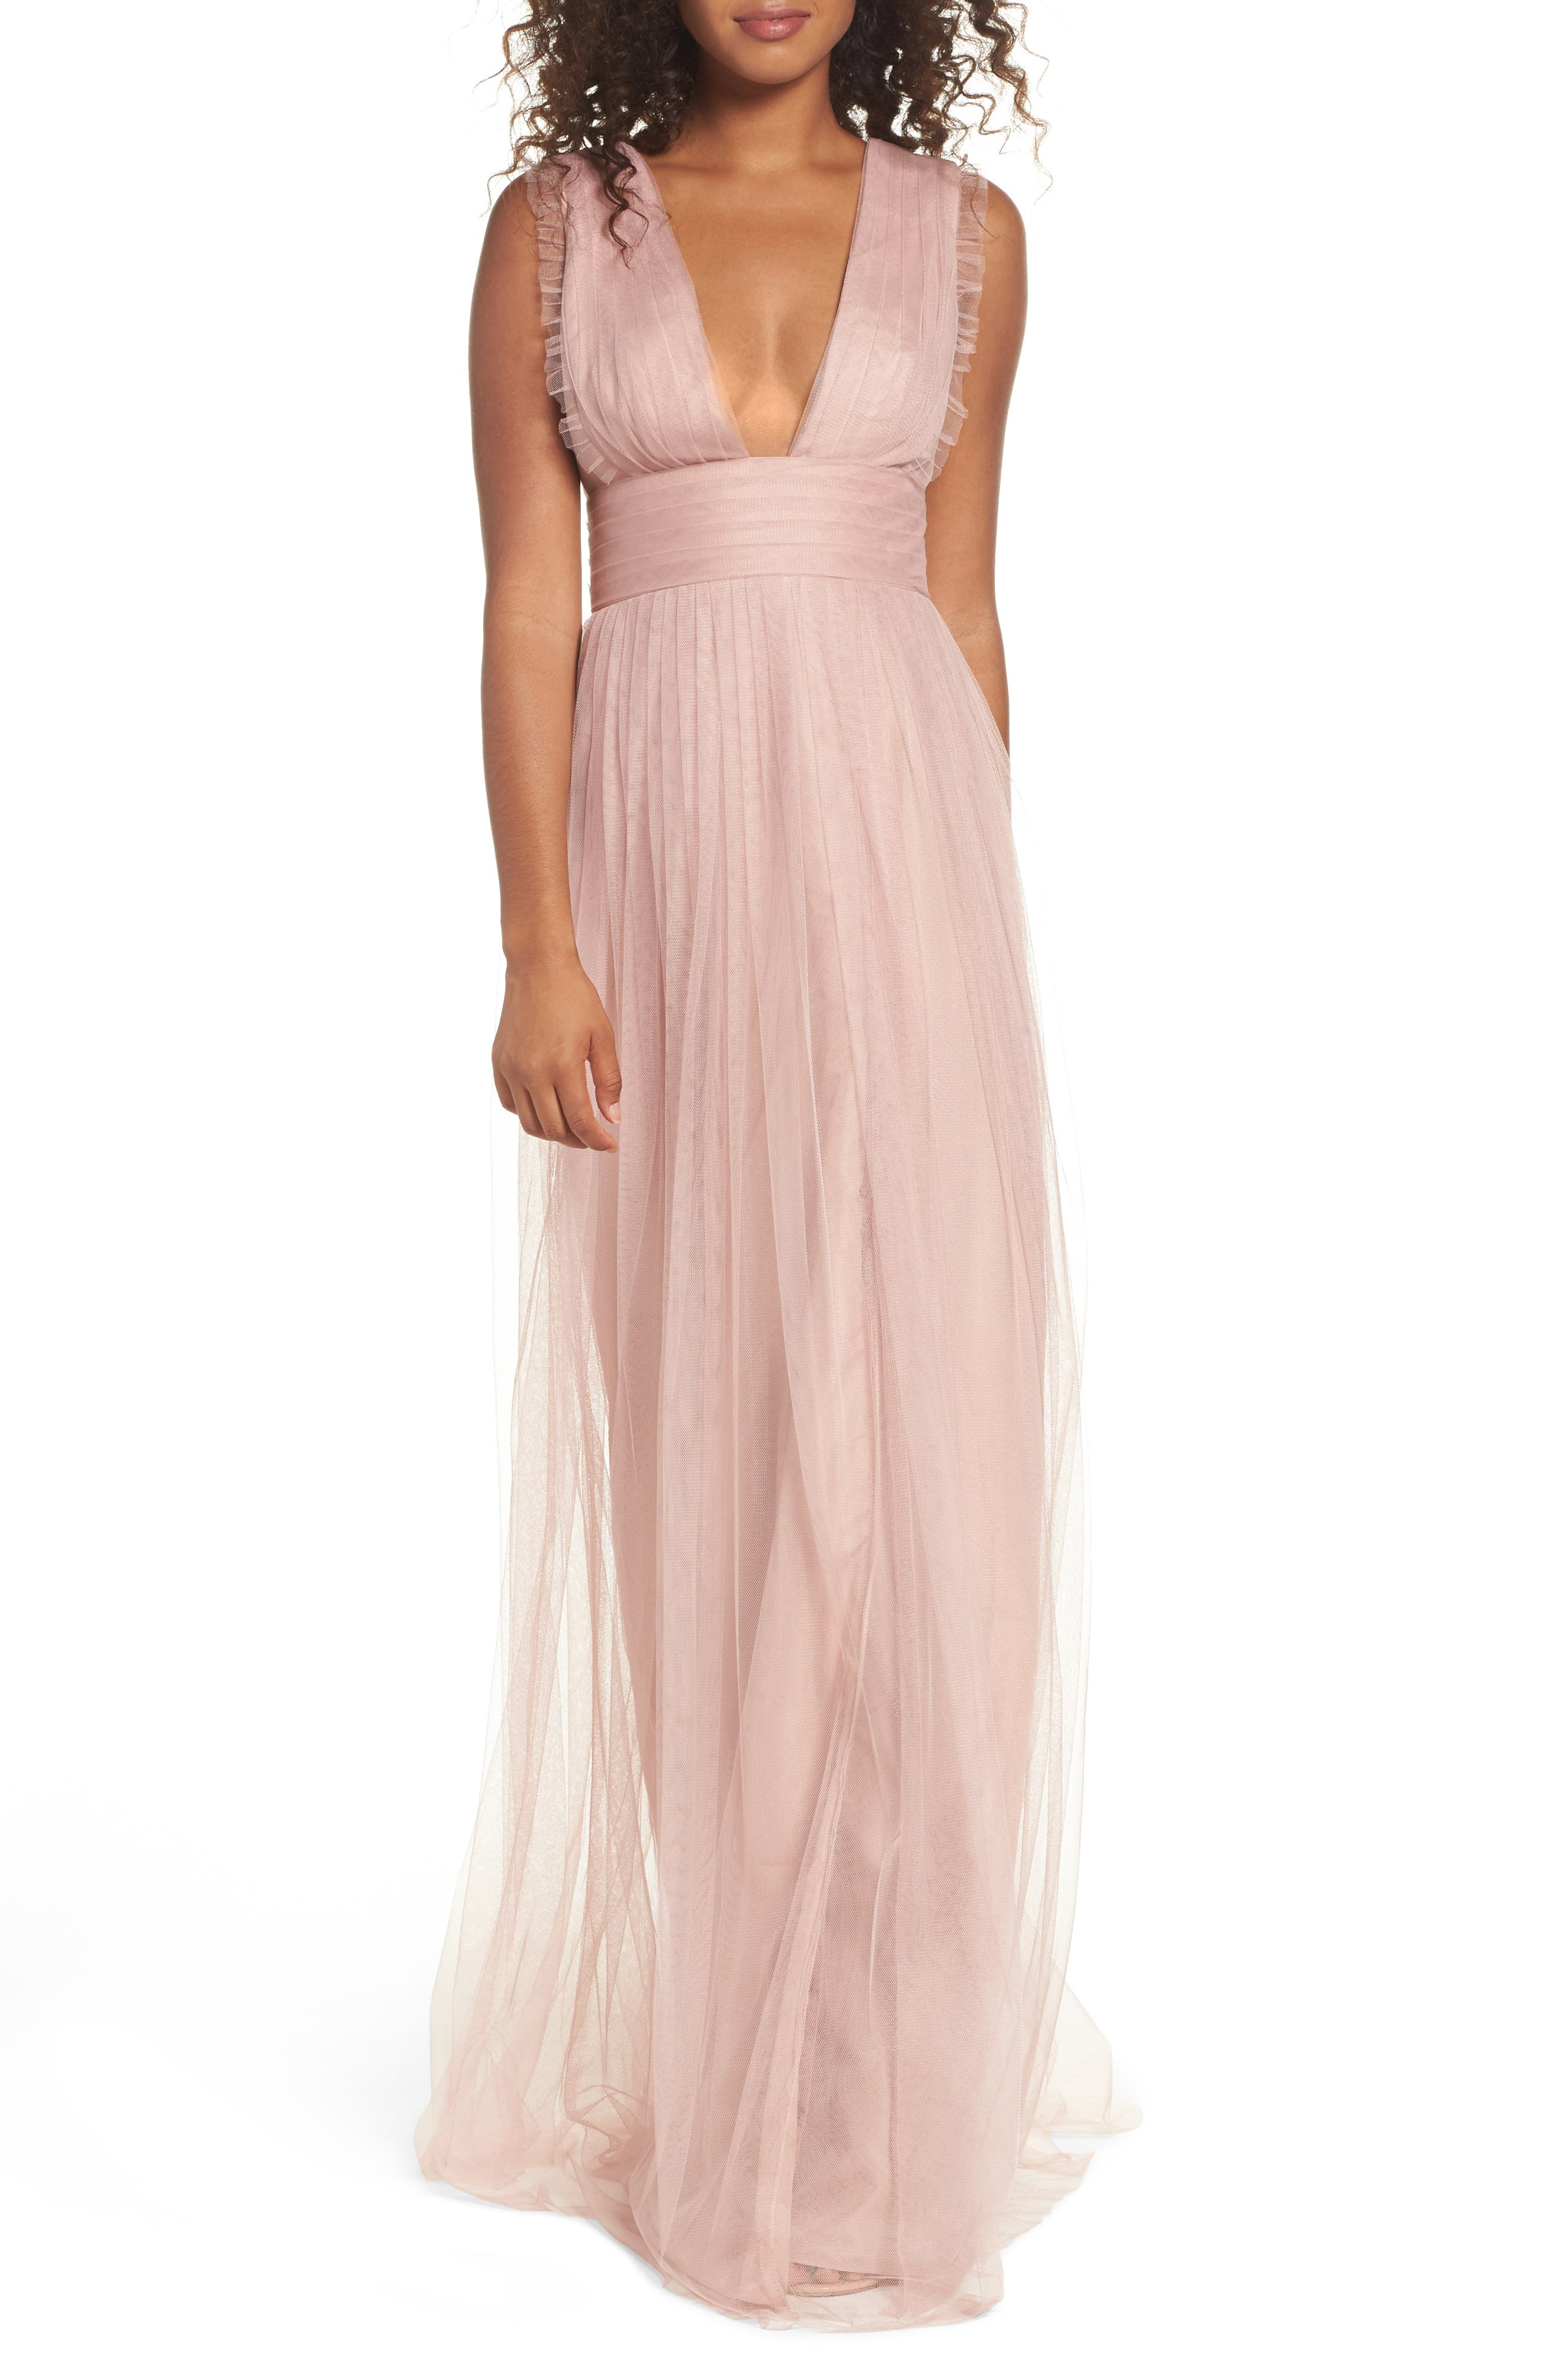 Monique Lhuillier Bridesmaids Isla Ruffle Pleated Tulle Gown (Nordstrom Exclusive)